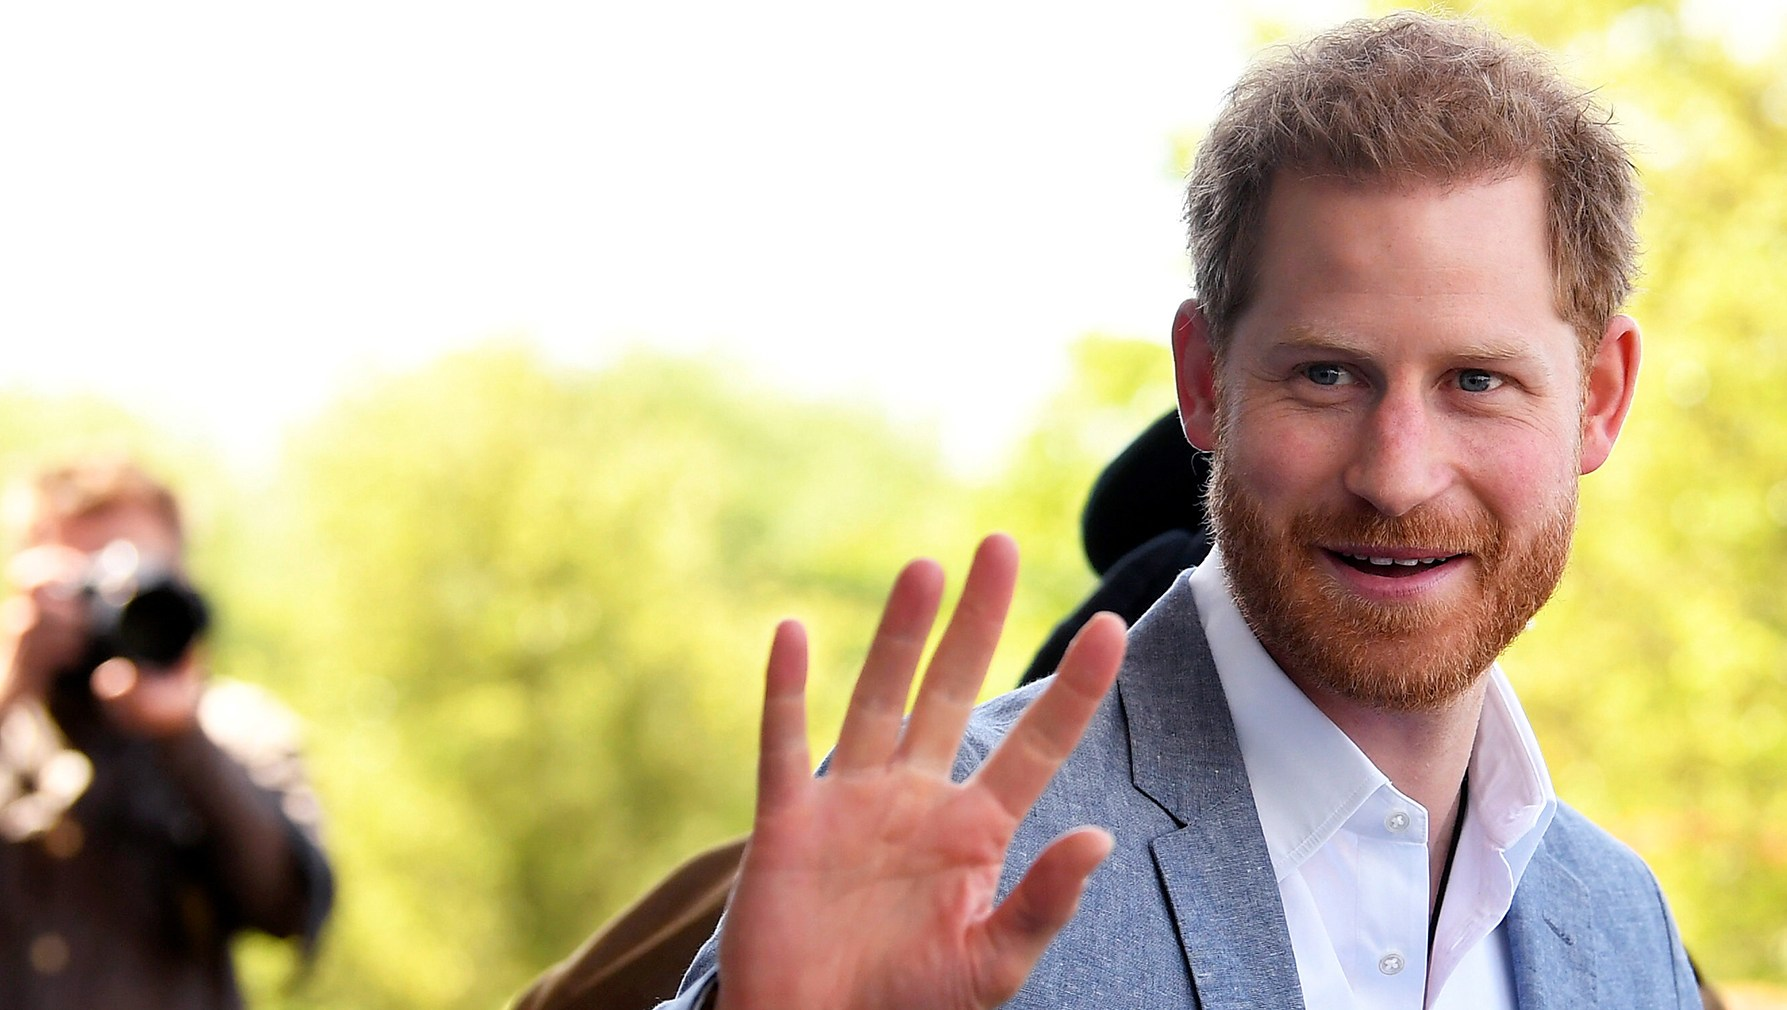 Prince Harry Visits Oxsrad Centre Opened By Princess Diana